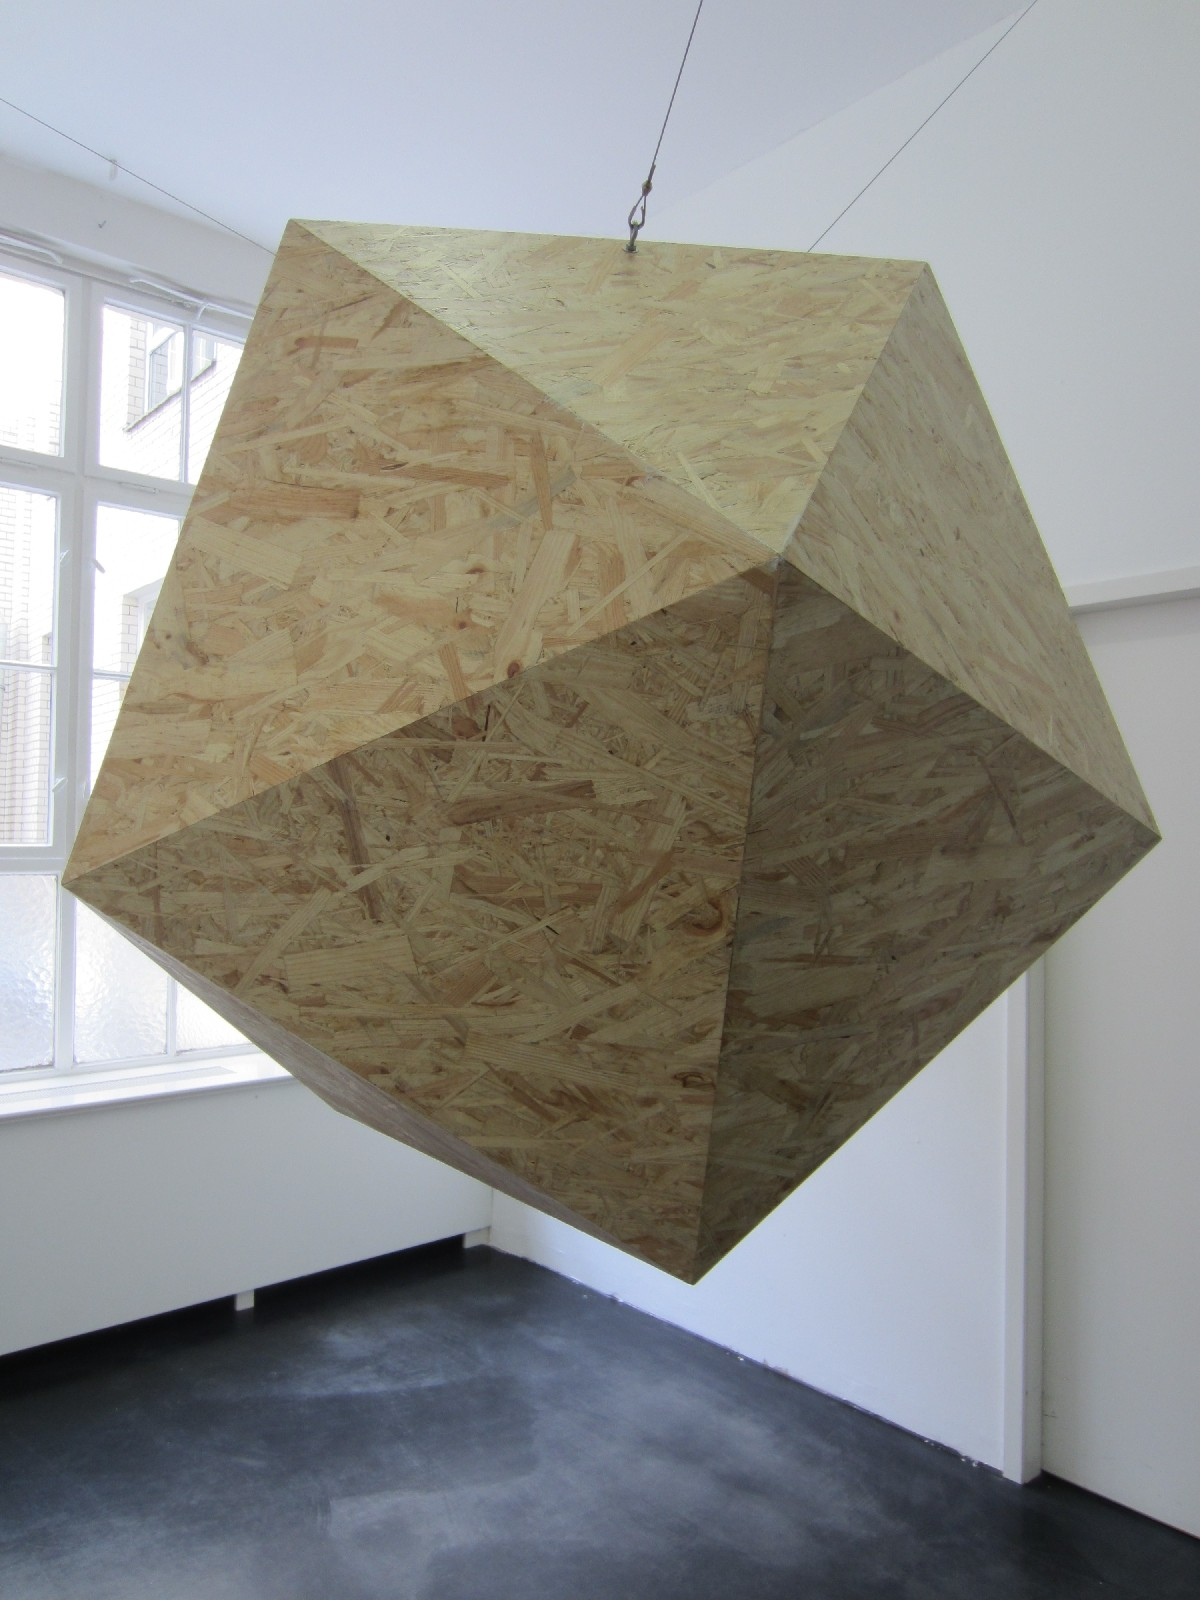 Berlin Gallery Weekend 2012 - felix kiessling @ alexander levy